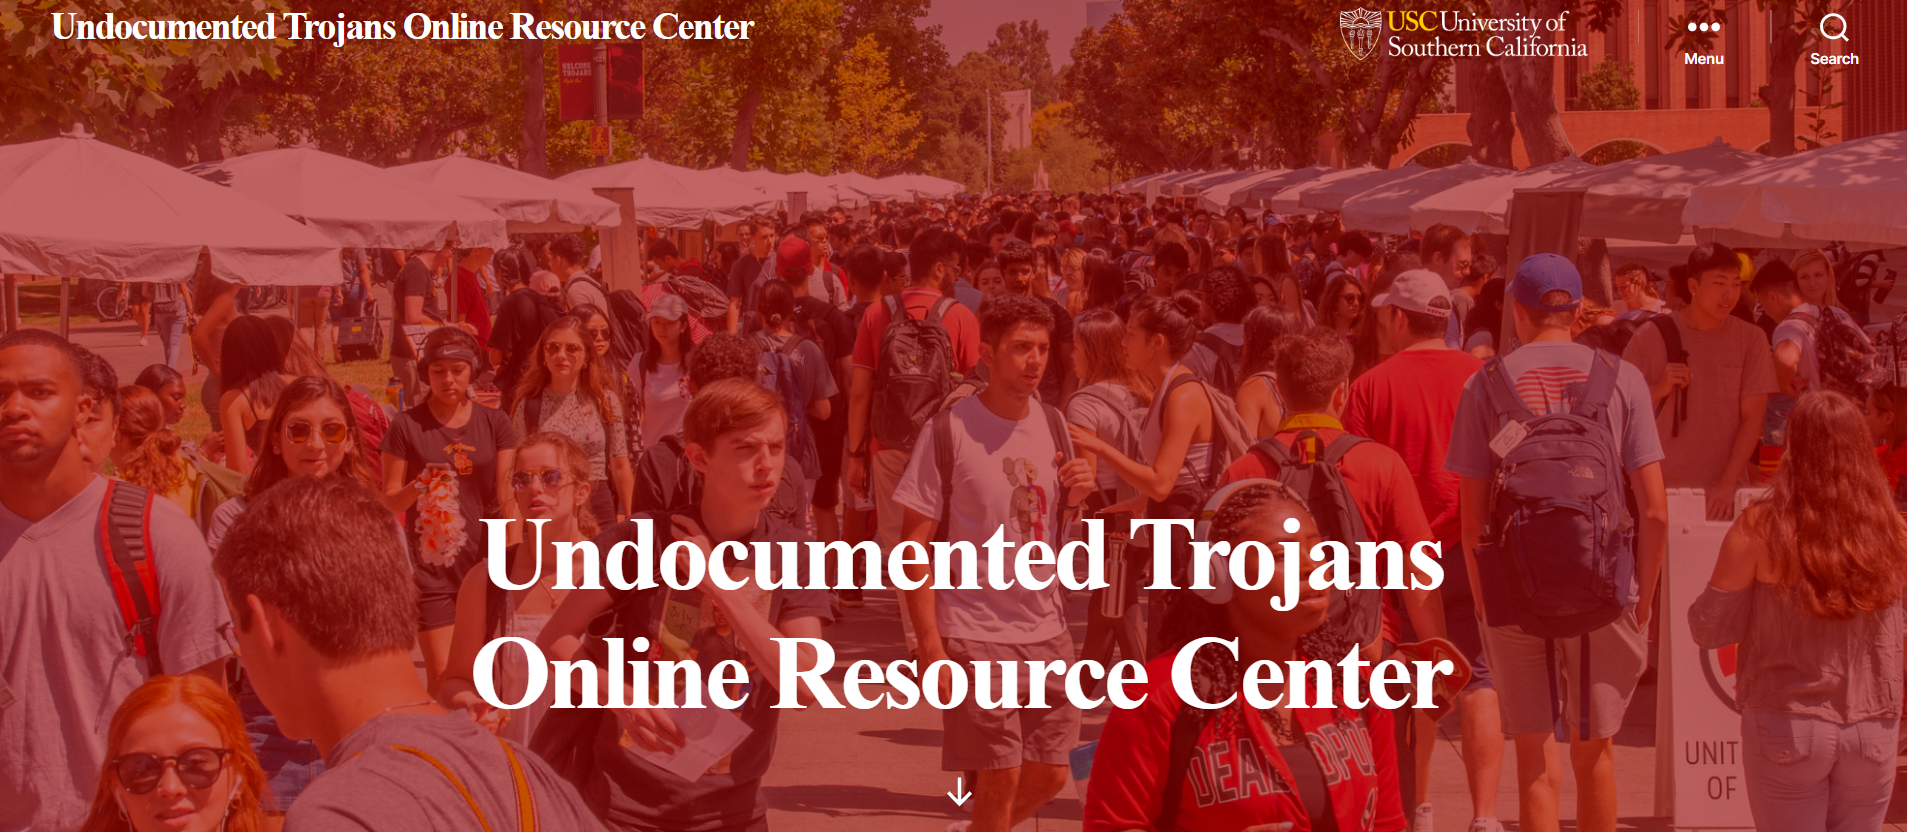 Undocumented Trojans Online Resource Center Home Page - Screenshot